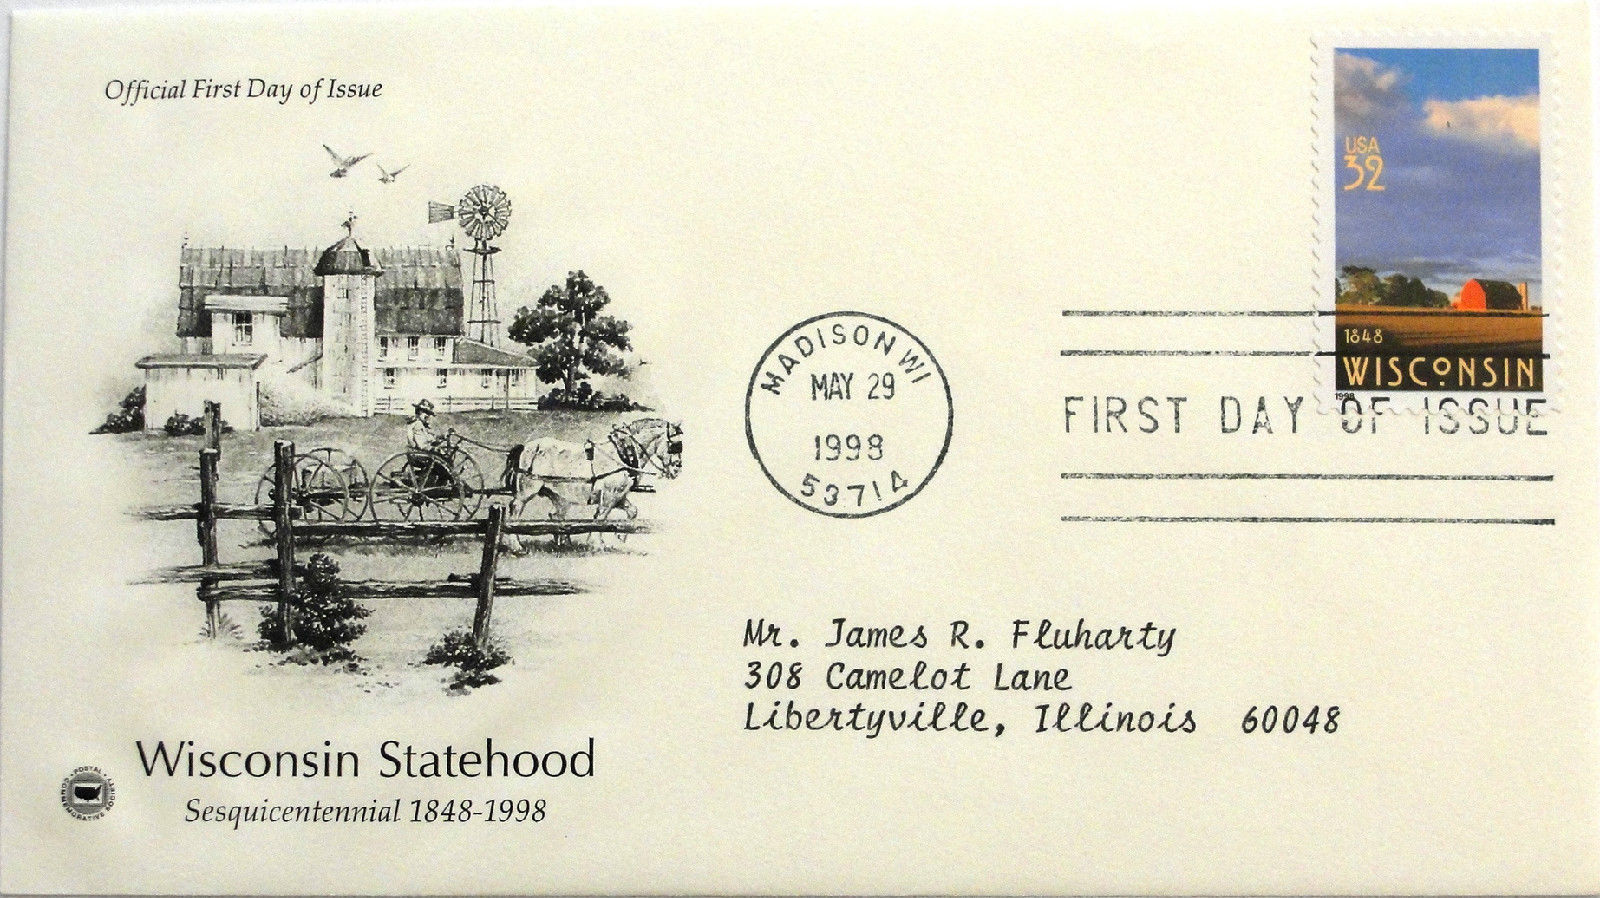 May 29, 1998 First Day of Issue, PC Society Covers, Wisconsin Statehood #18